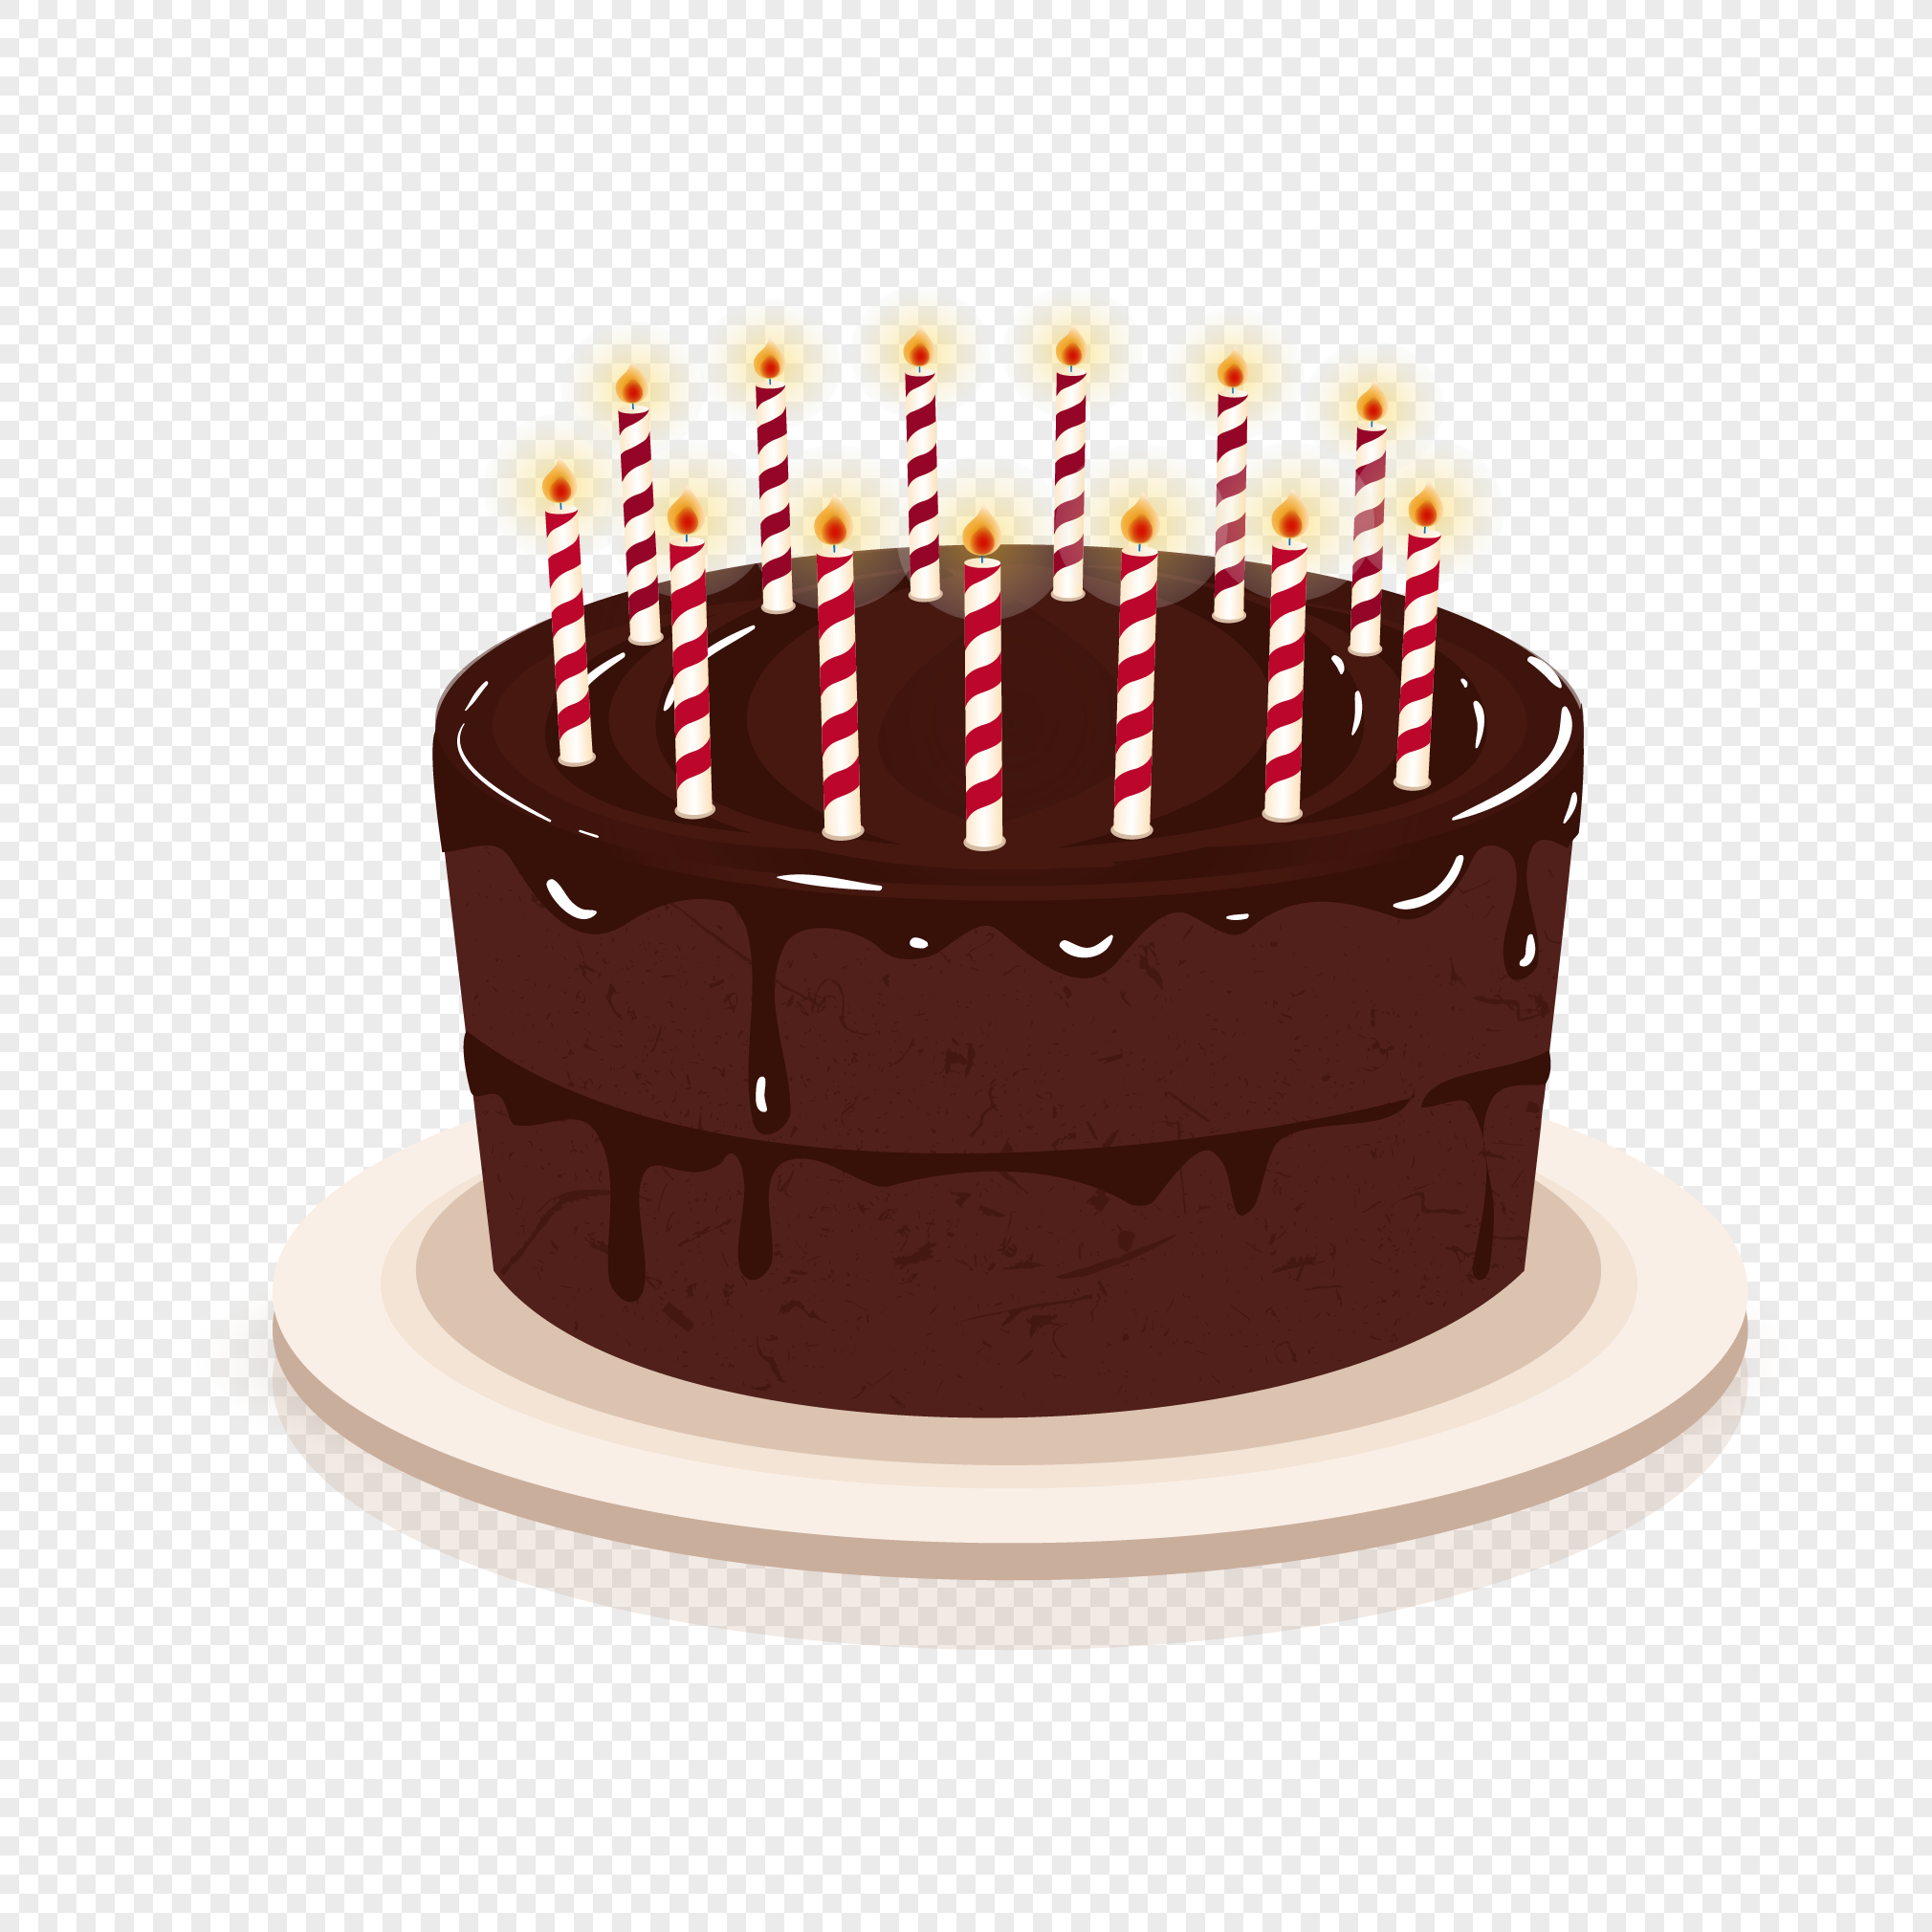 Chocolate Birthday Cake Png Image Picture Free Download